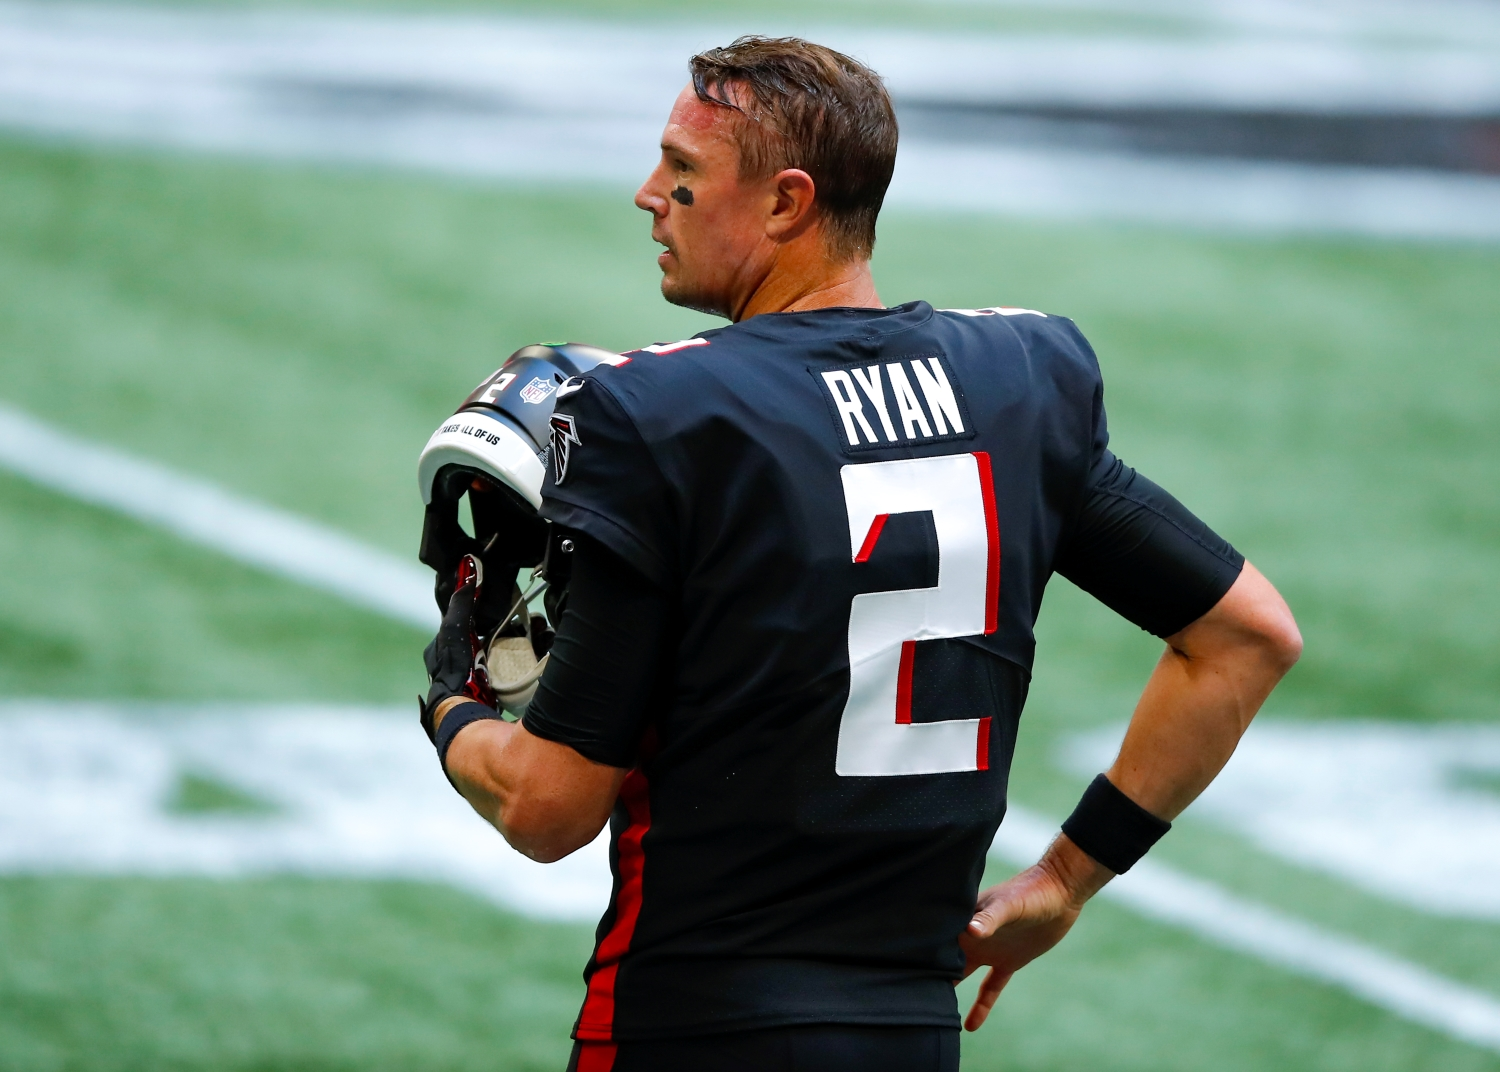 Atlanta Falcons quarterback Matt Ryan stands with his helmet off before a game against the Chicago Bears.